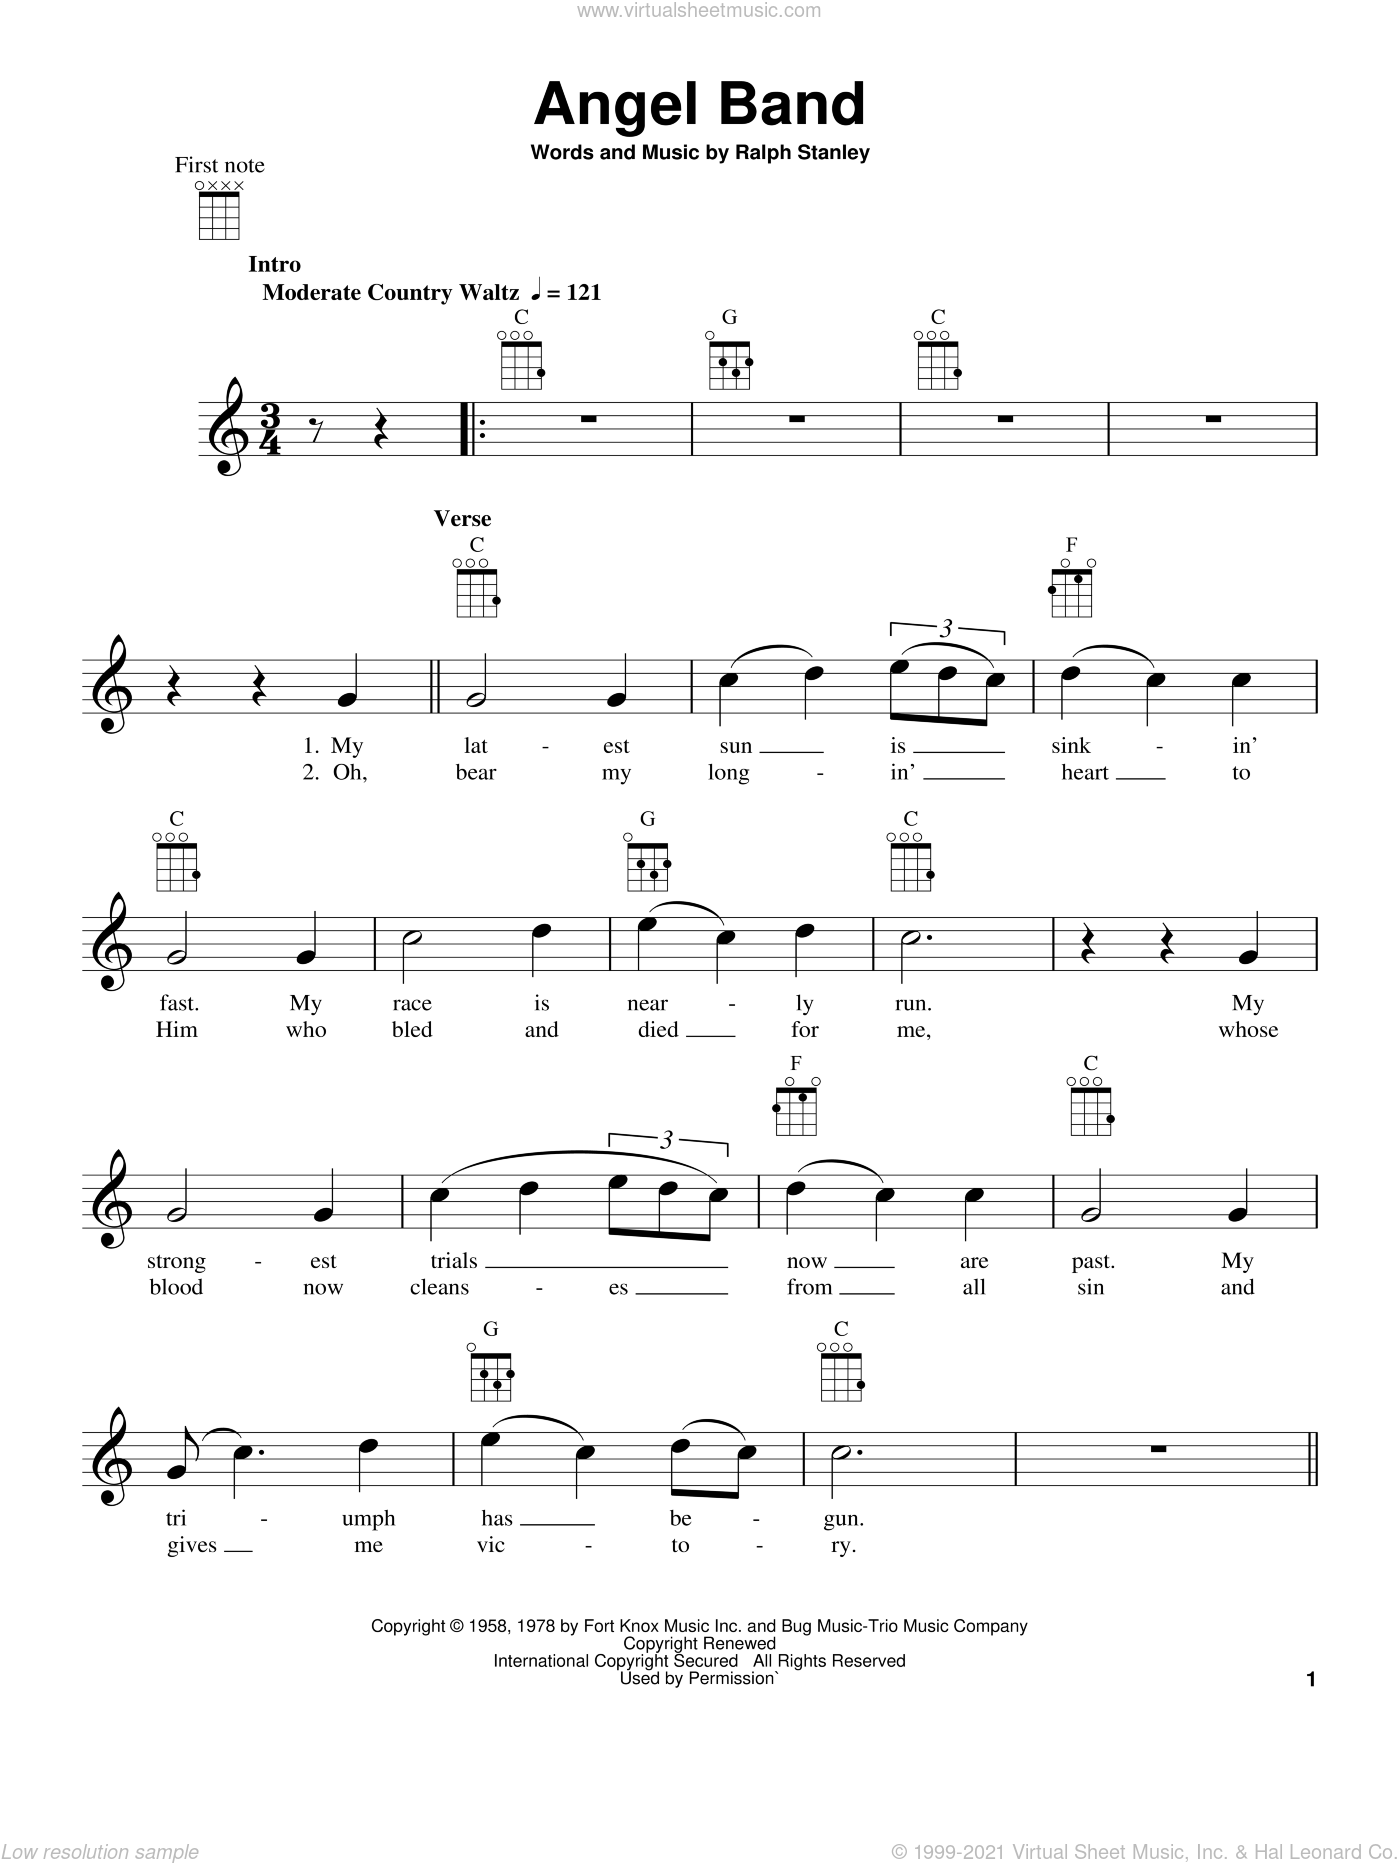 Angel Band sheet music for ukulele by Ralph Stanley